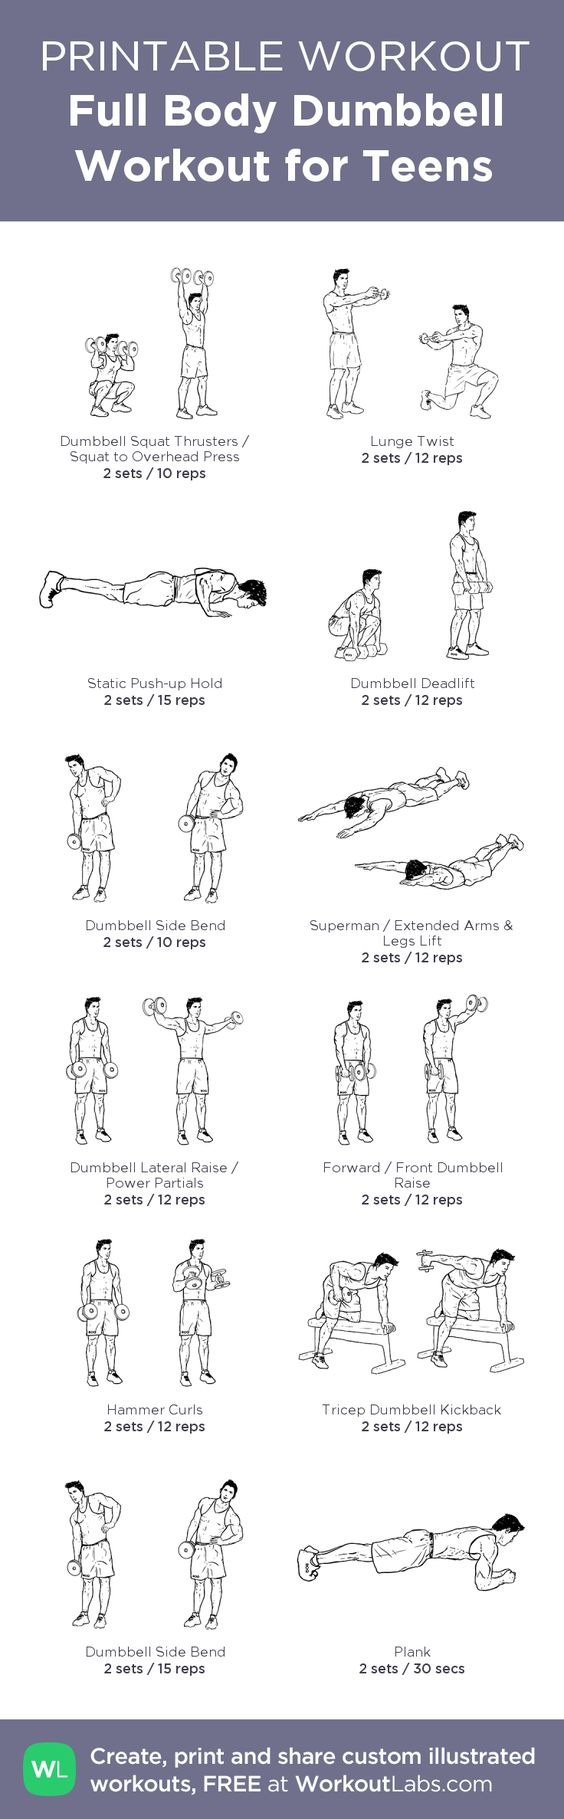 a report on exercises with dumbbells For those of you doing insanity / having done insanity / thinking about doing insanity: this is for you insanity is, by far, my favorite at-home workout dvd program and has proven to be the best cardio i have found (i have reviewed quite a few) you could consider me an insanity-veteran since i have done about 3 rounds of this program (over the years) and am addicted to it.